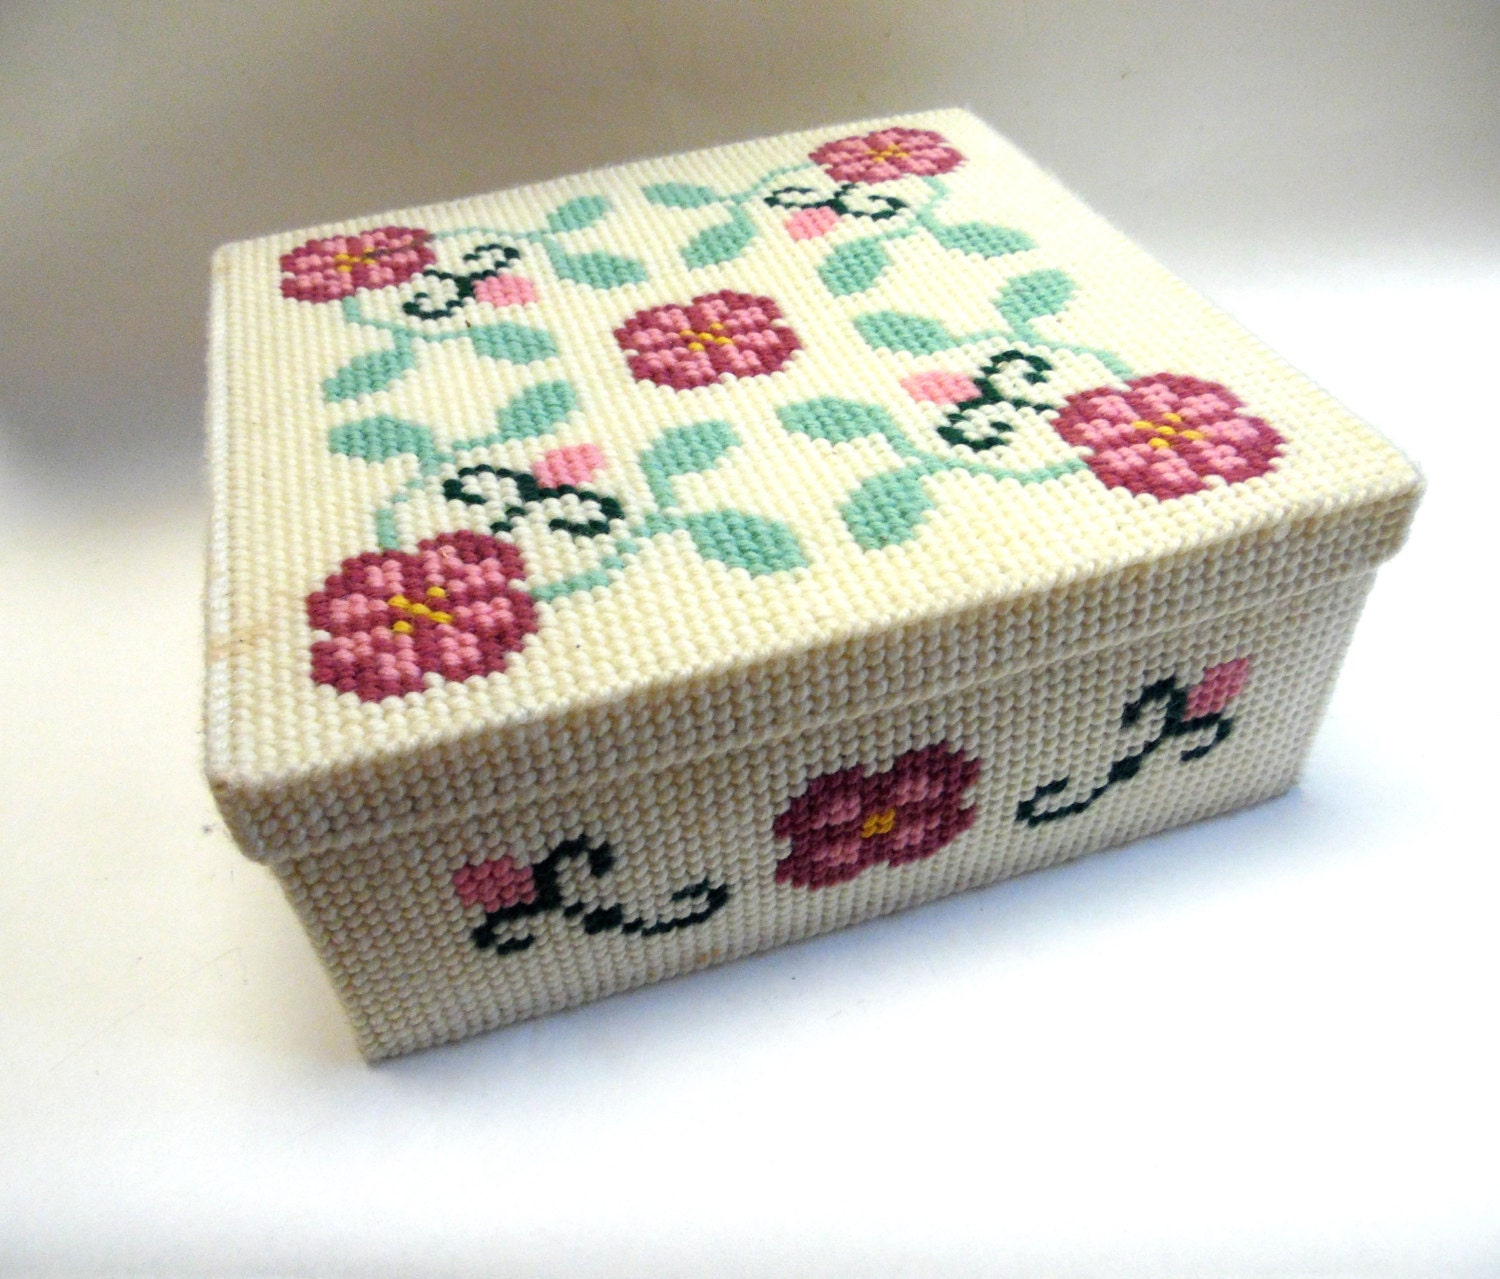 Embroidery Plastic Canvas Box Tin Lined Rose Decorative